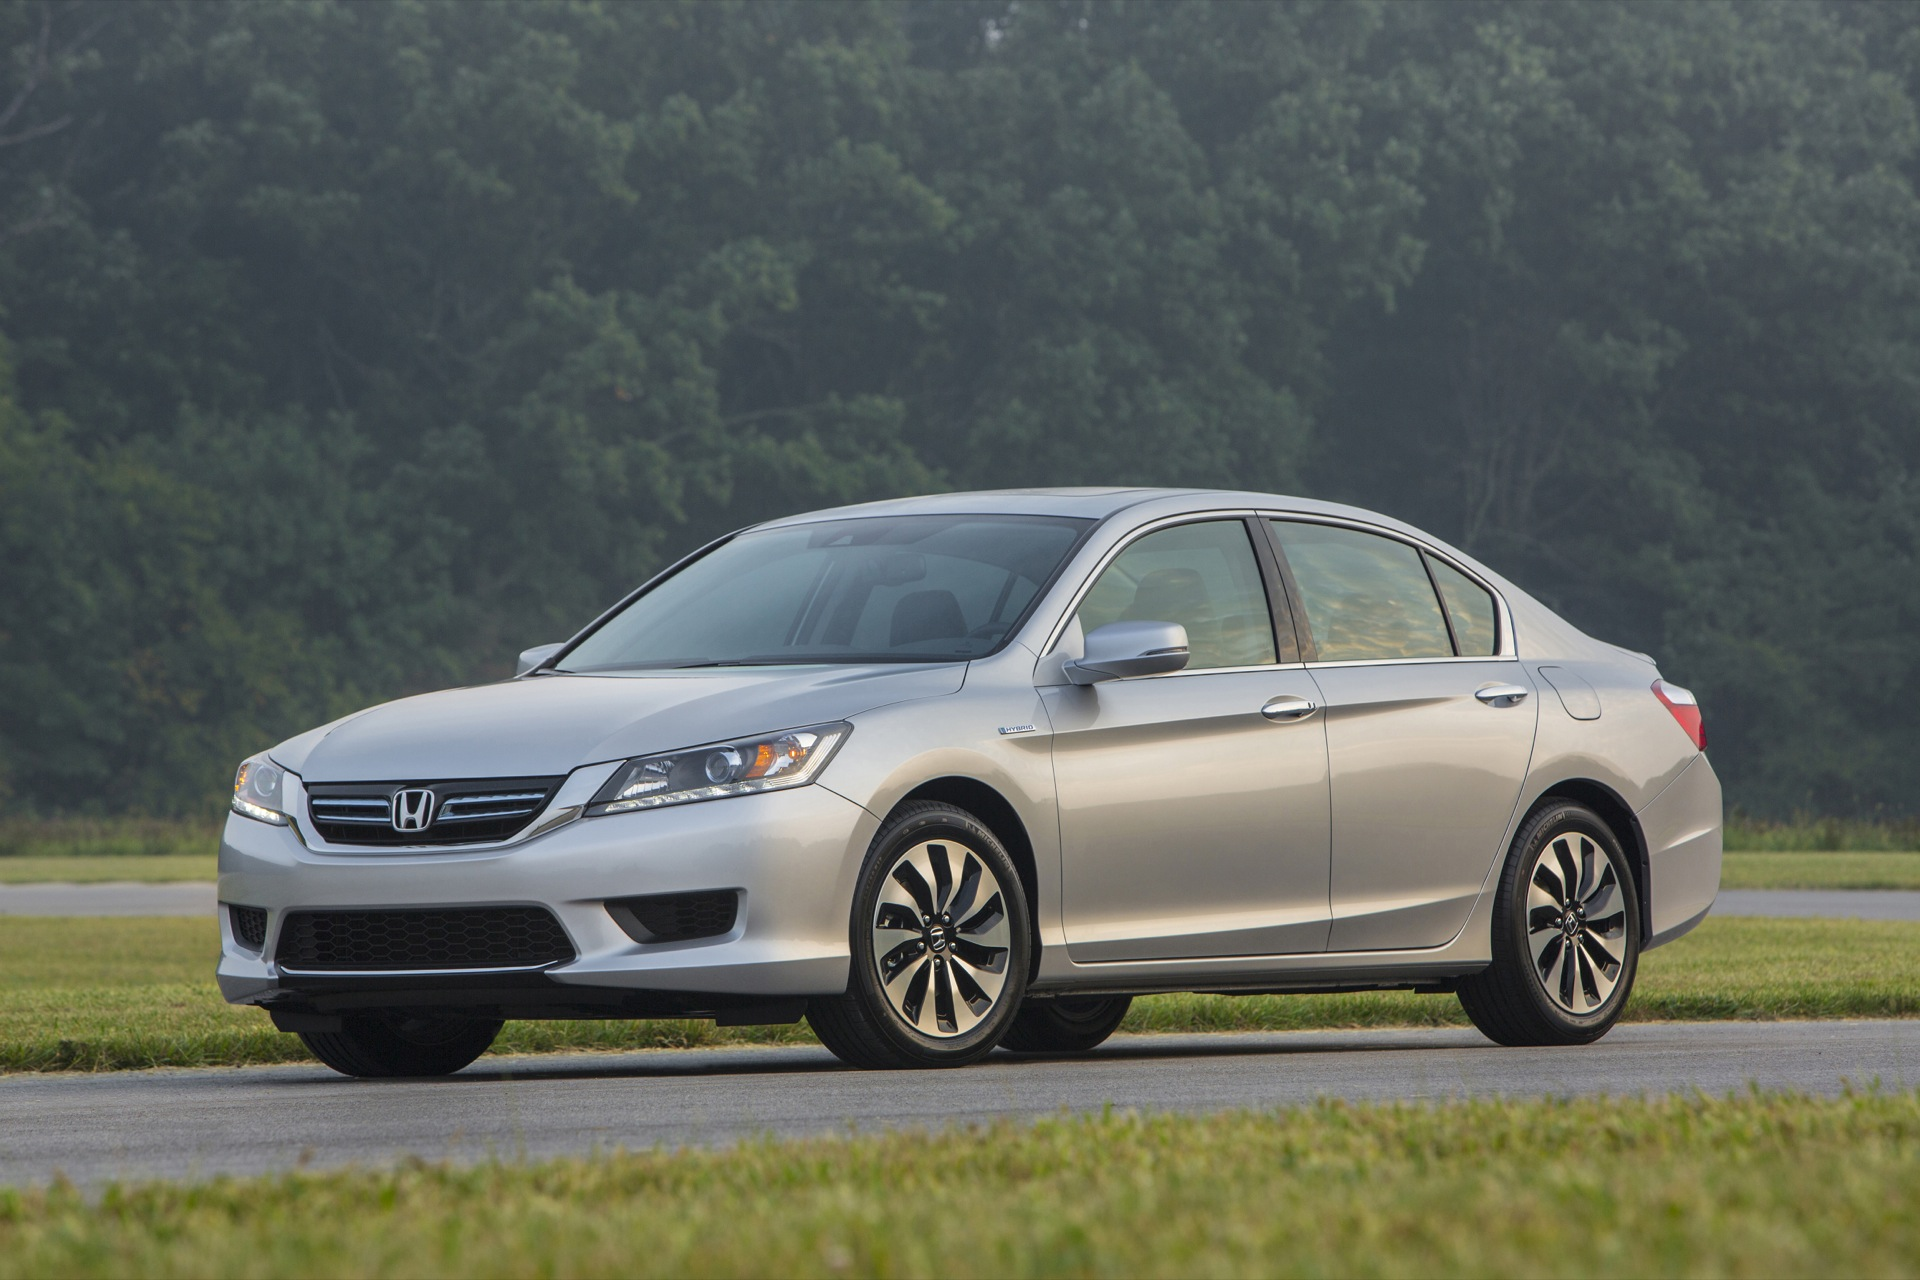 2015 Honda Accord #18